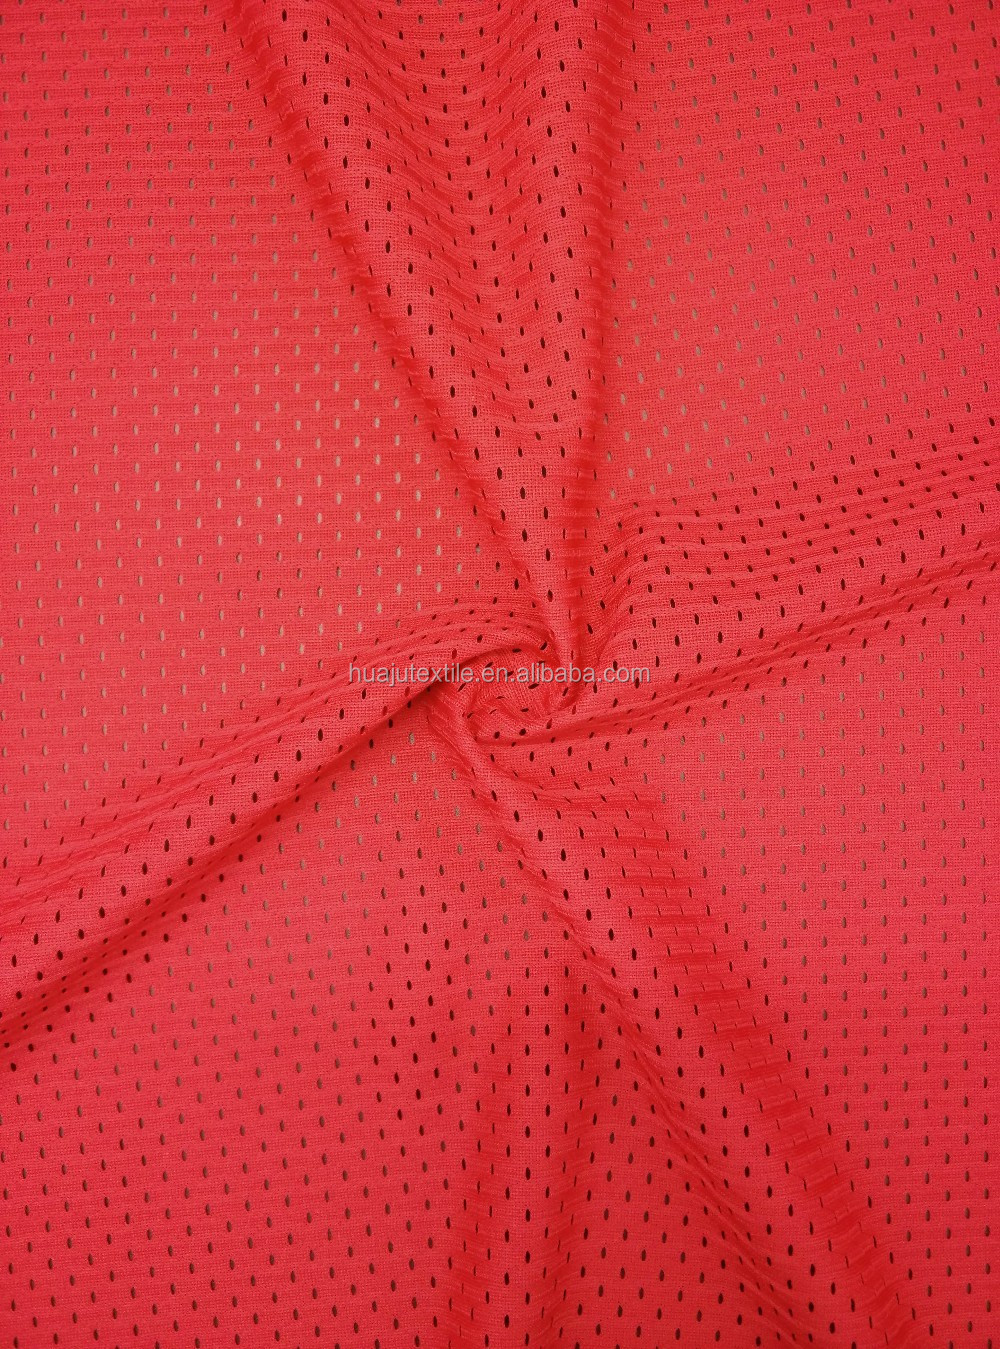 Polyester Tinsel Fdy Home Textile Mesh Fabric Fashion Clothing